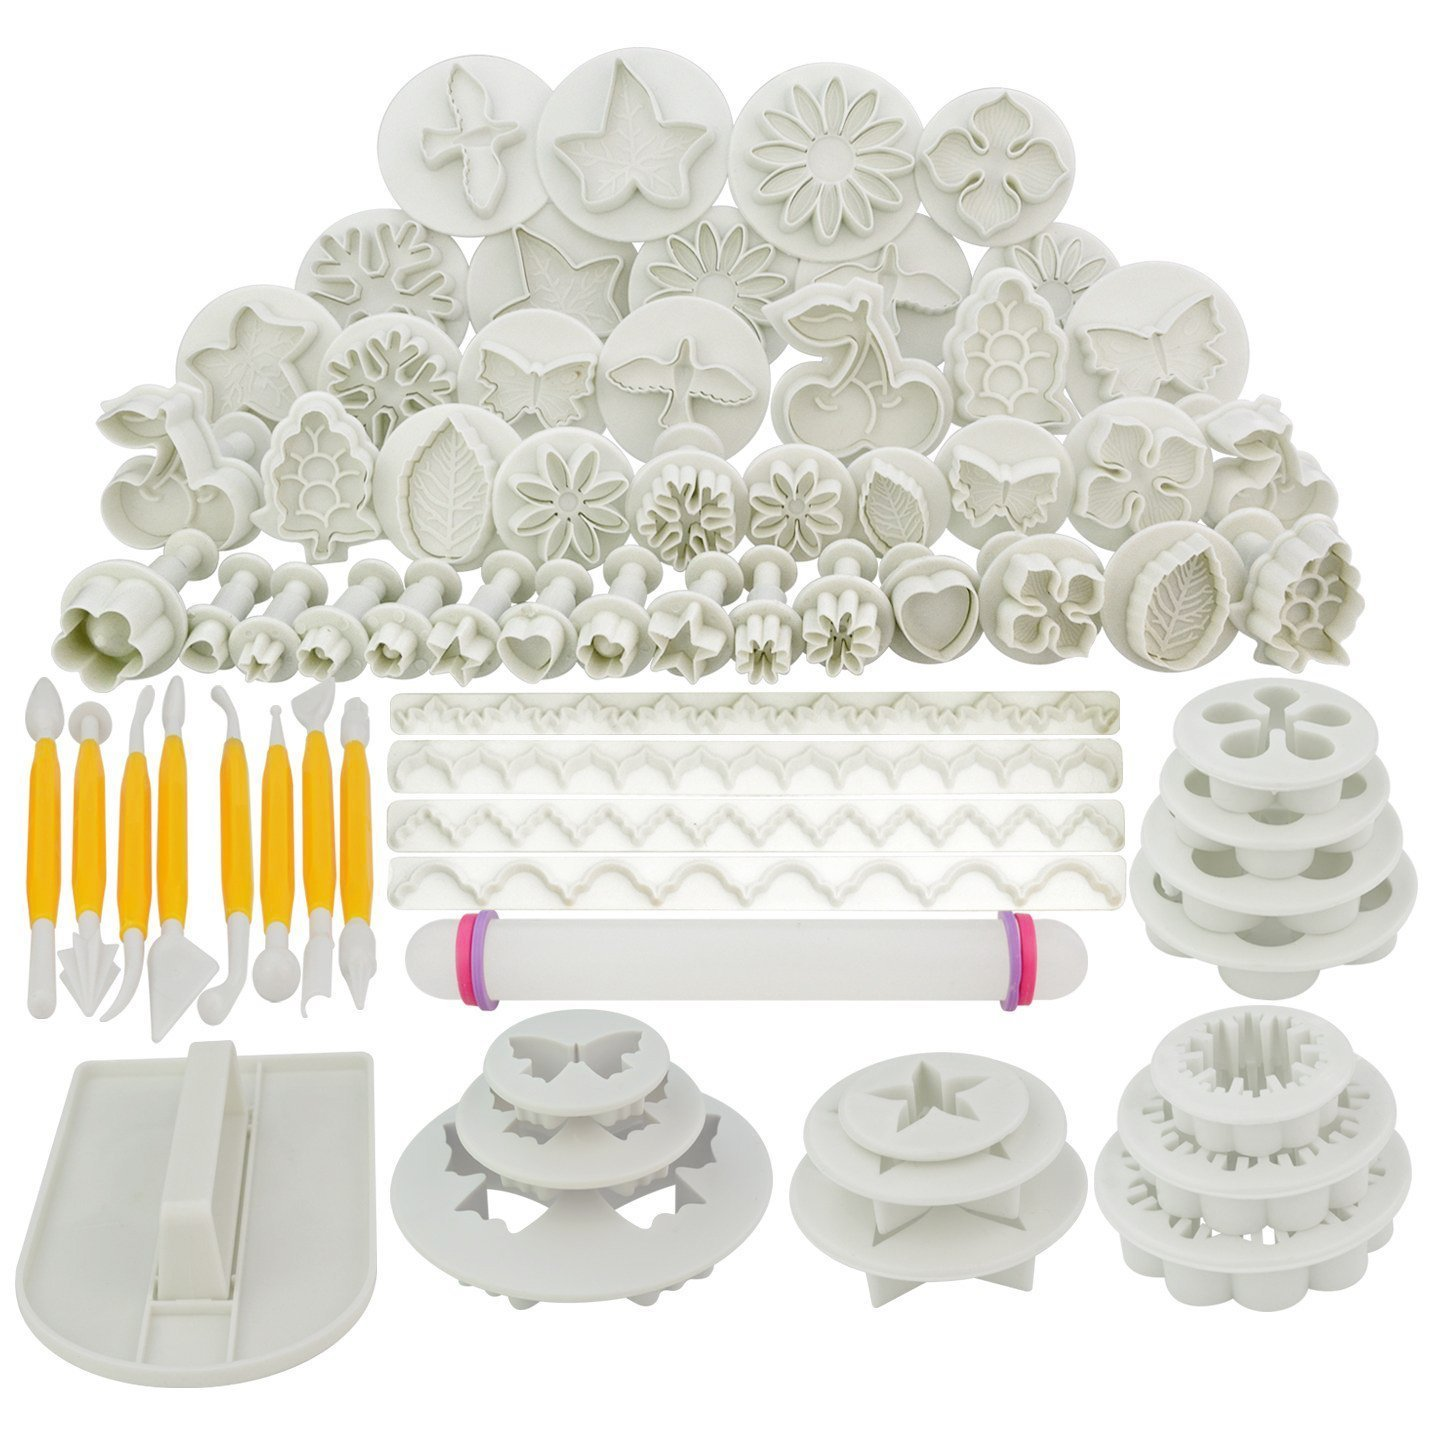 Marrywindix 68pcs 21 Sets Cake Decration Tool Set By Catalina Fondant Cake Cutter Mold Sugarcraft Icing Decorating Flower Modelling Tools by Marrywindix (Image #1)